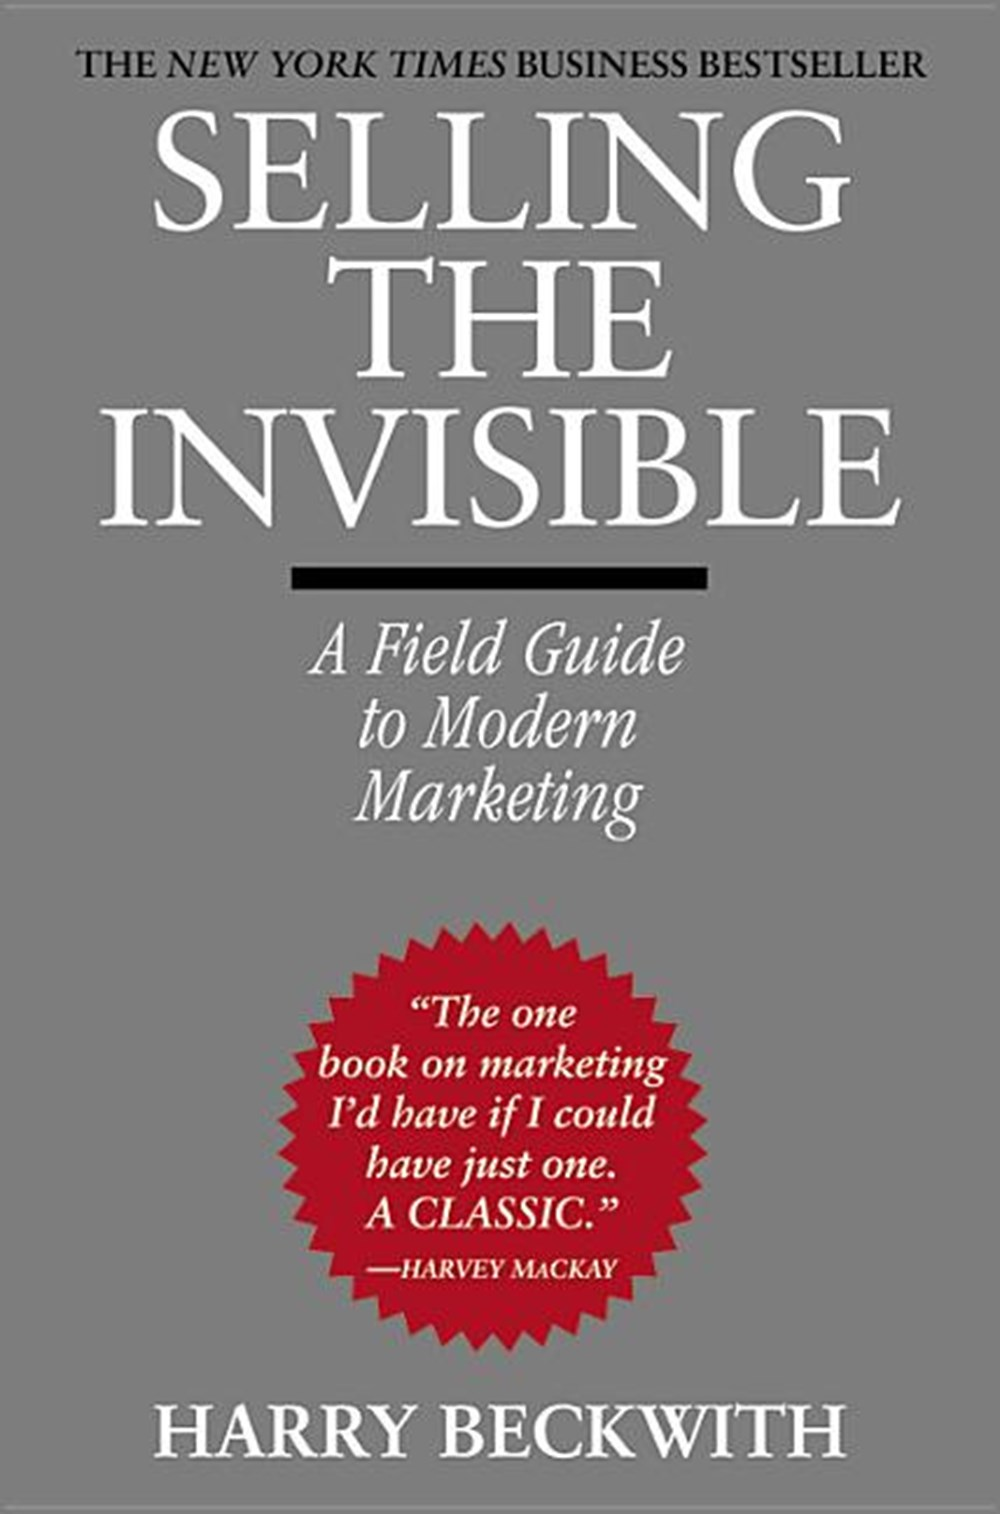 Selling the invisible – A field guide to Modern Marketing by Harry Beckwith